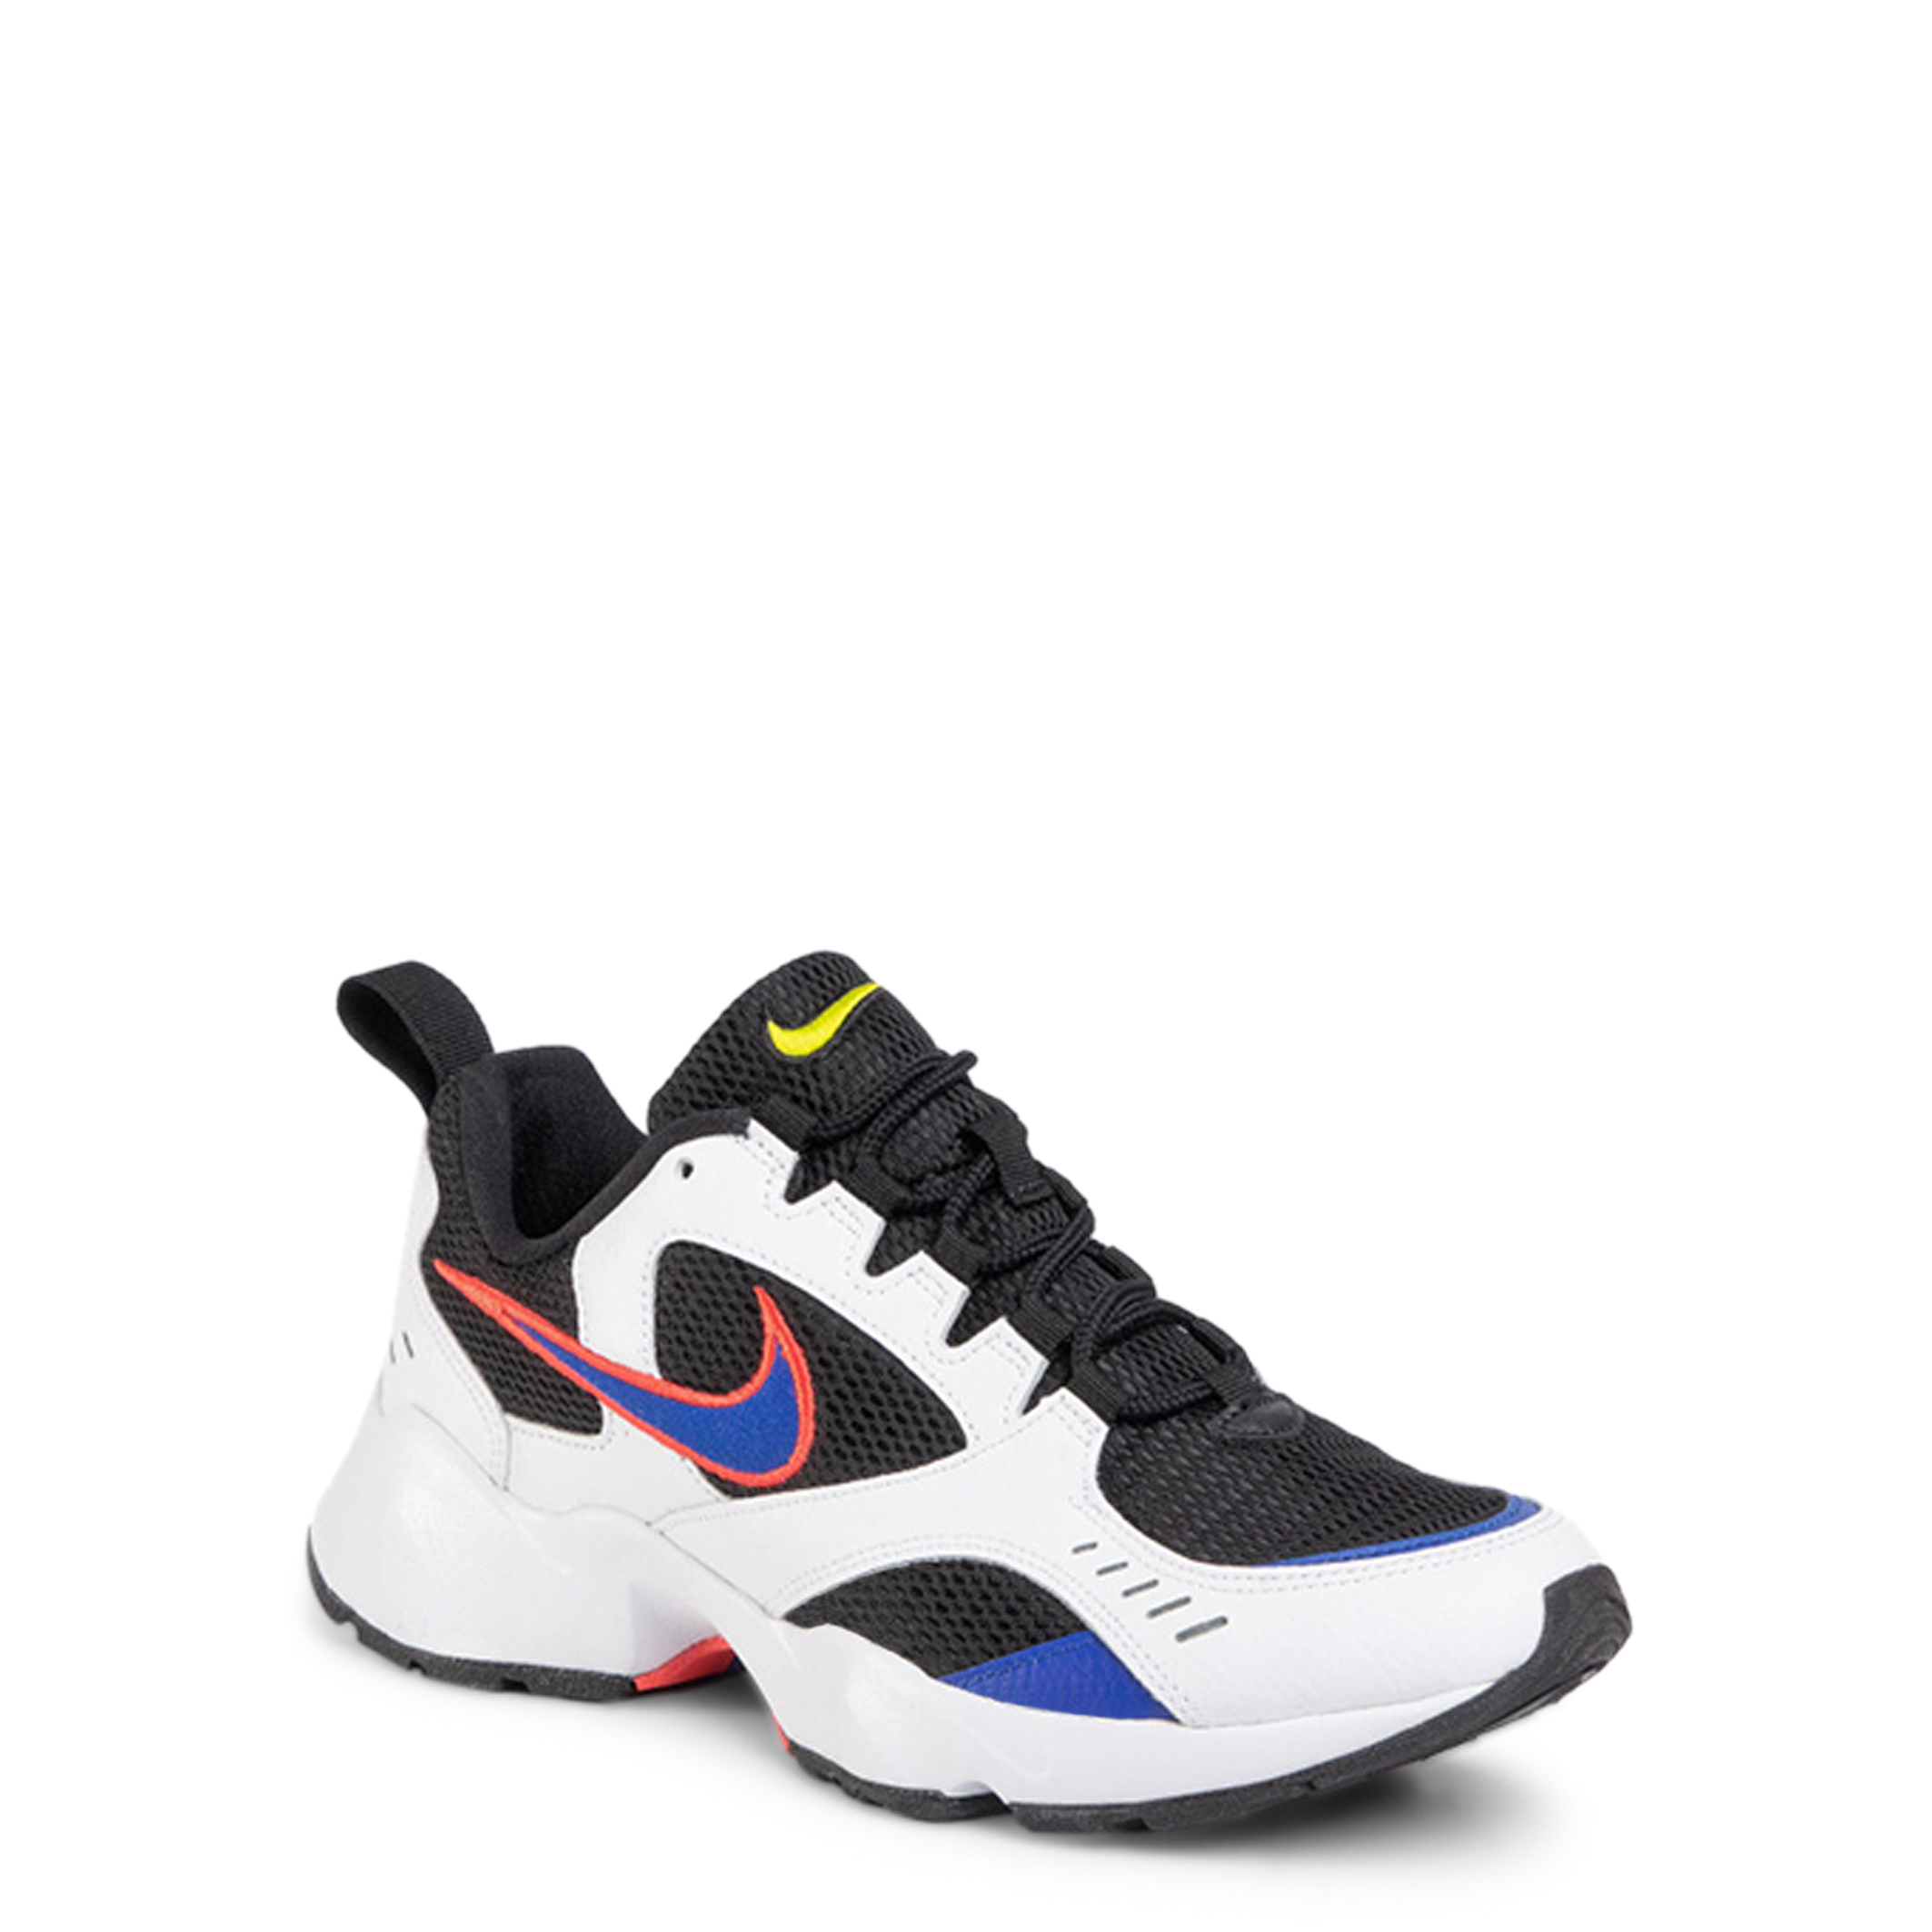 Baskets / Sport  Nike AirHeights-AT4522_008 white